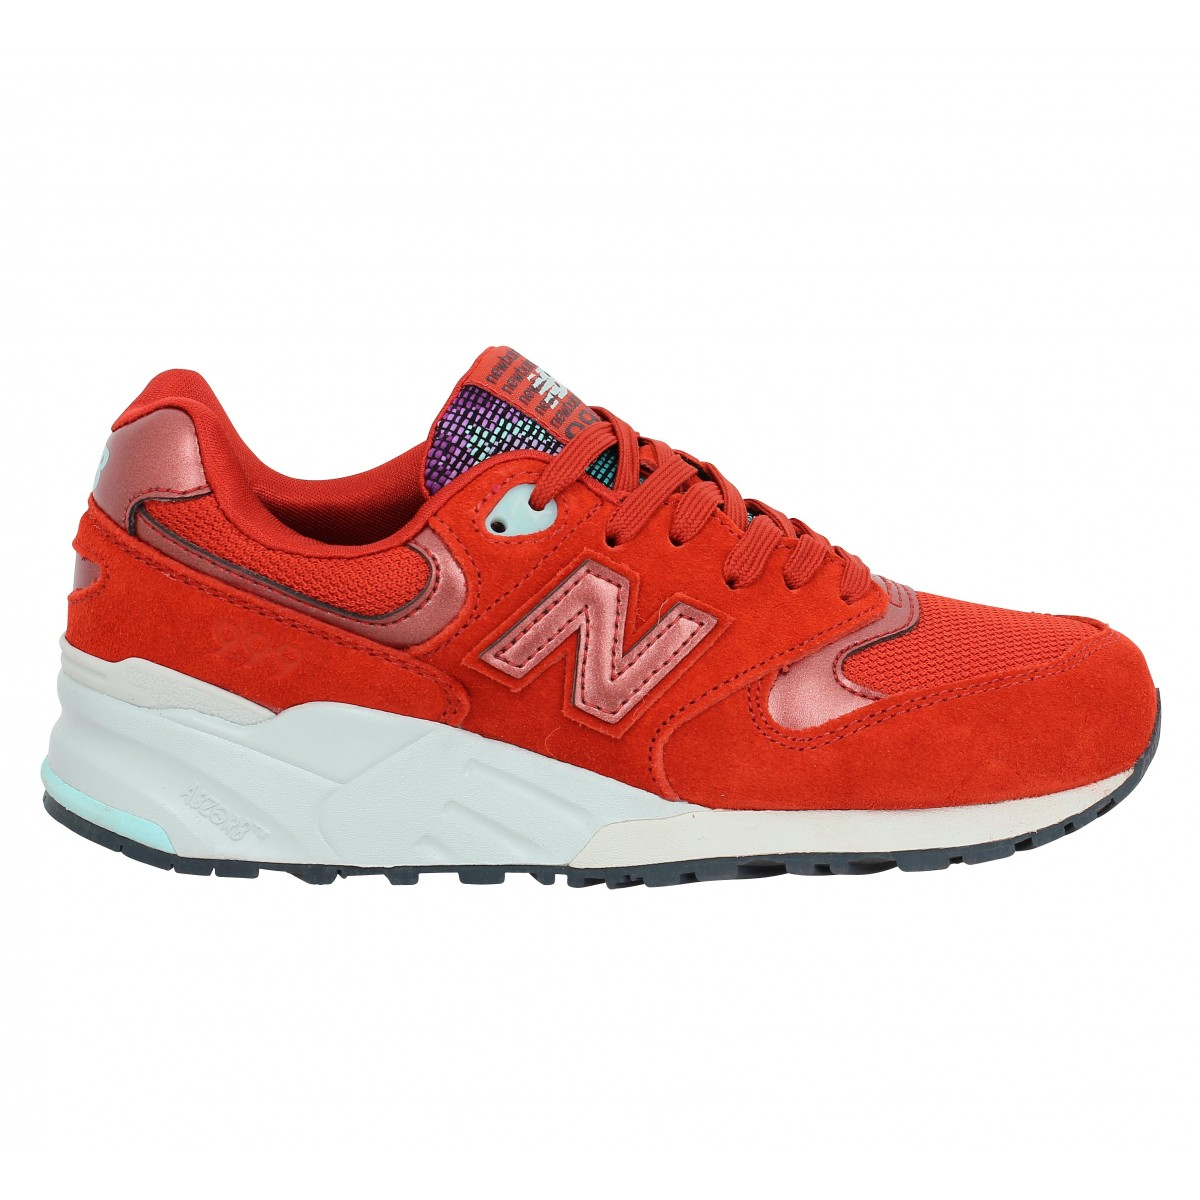 New balance 999 rouge femme | Fanny chaussures